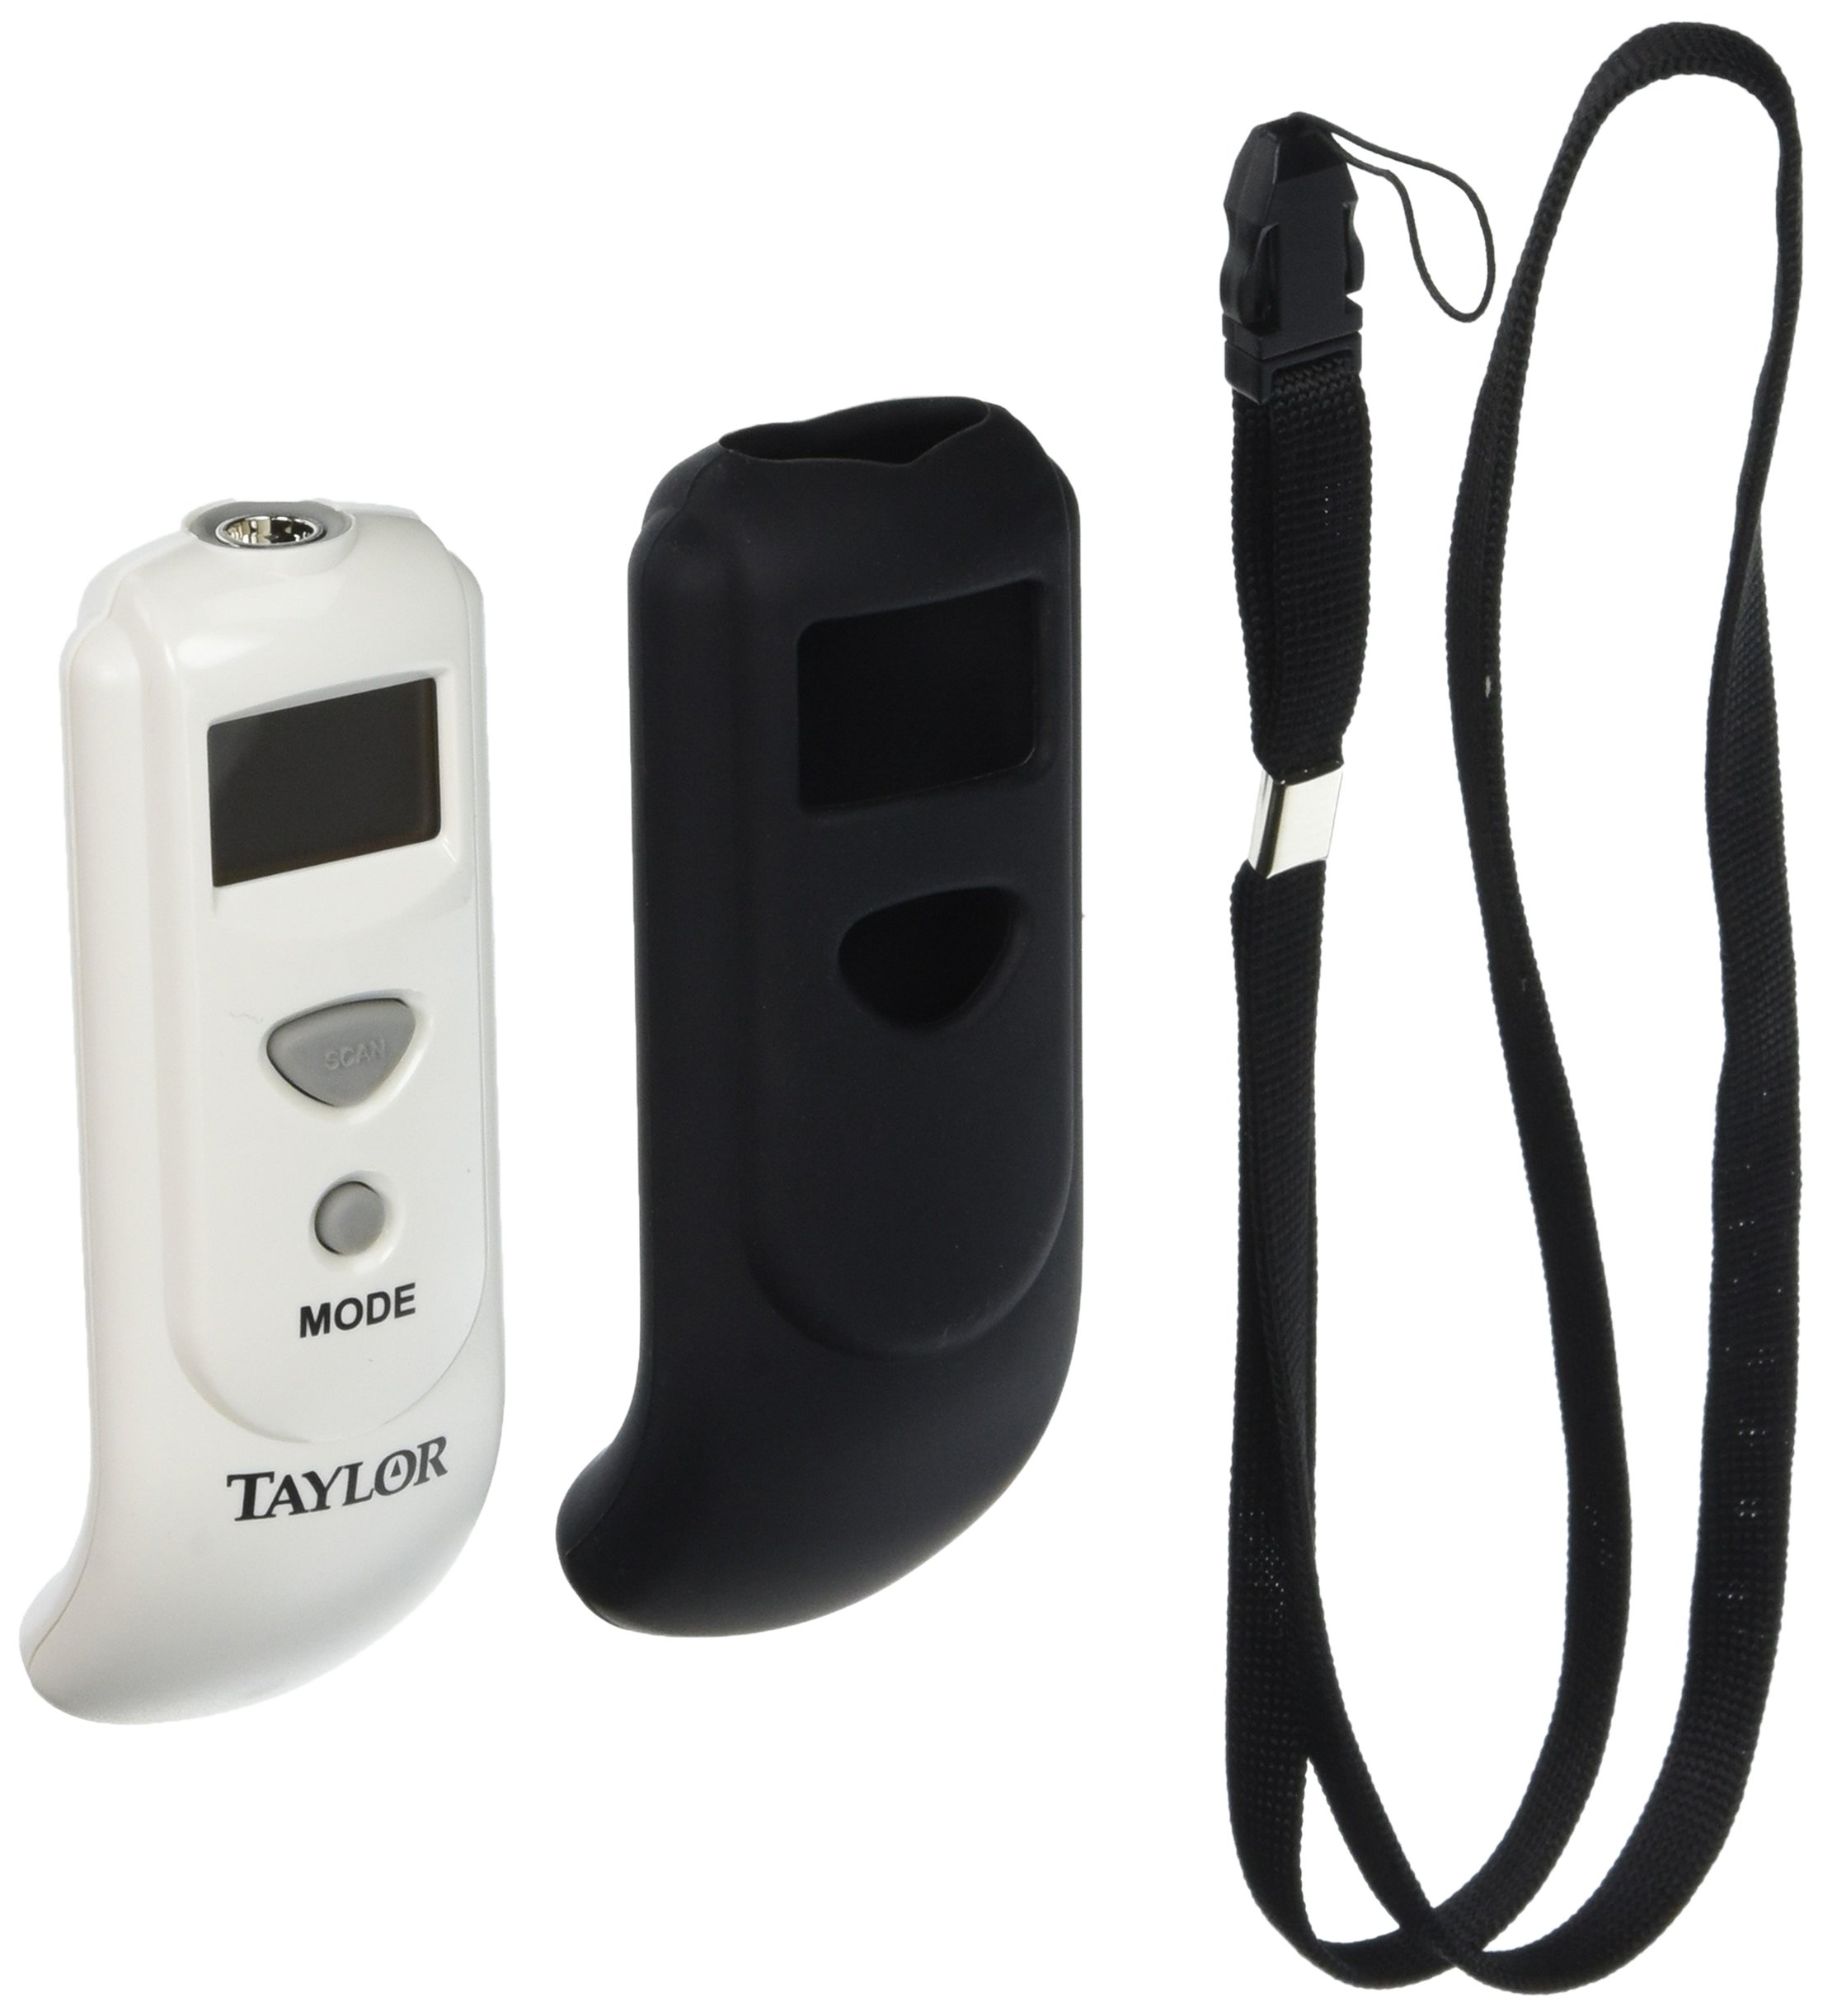 Taylor Precision Products Infrared Thermometer